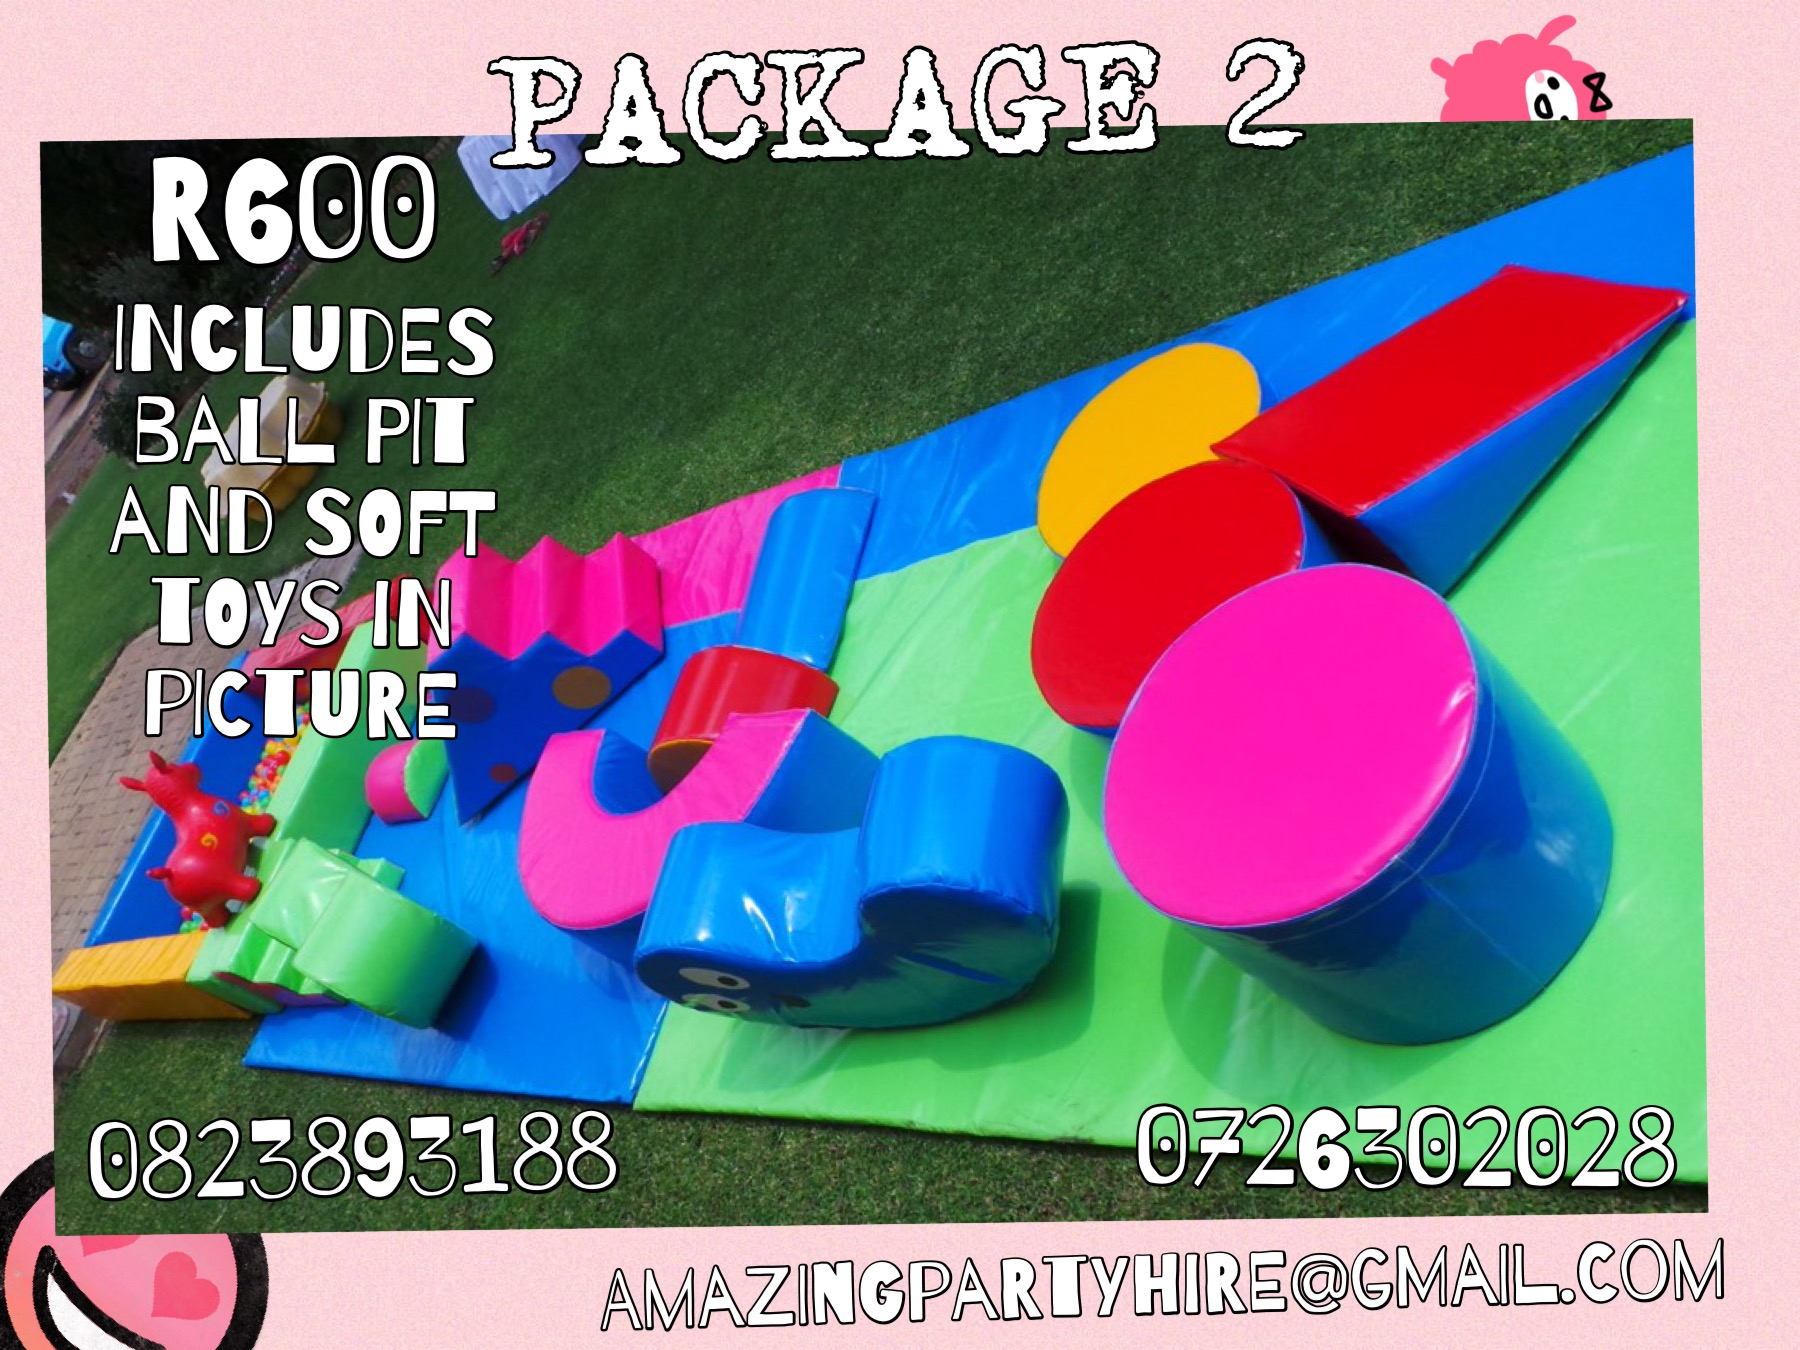 Package 2 R600 per day